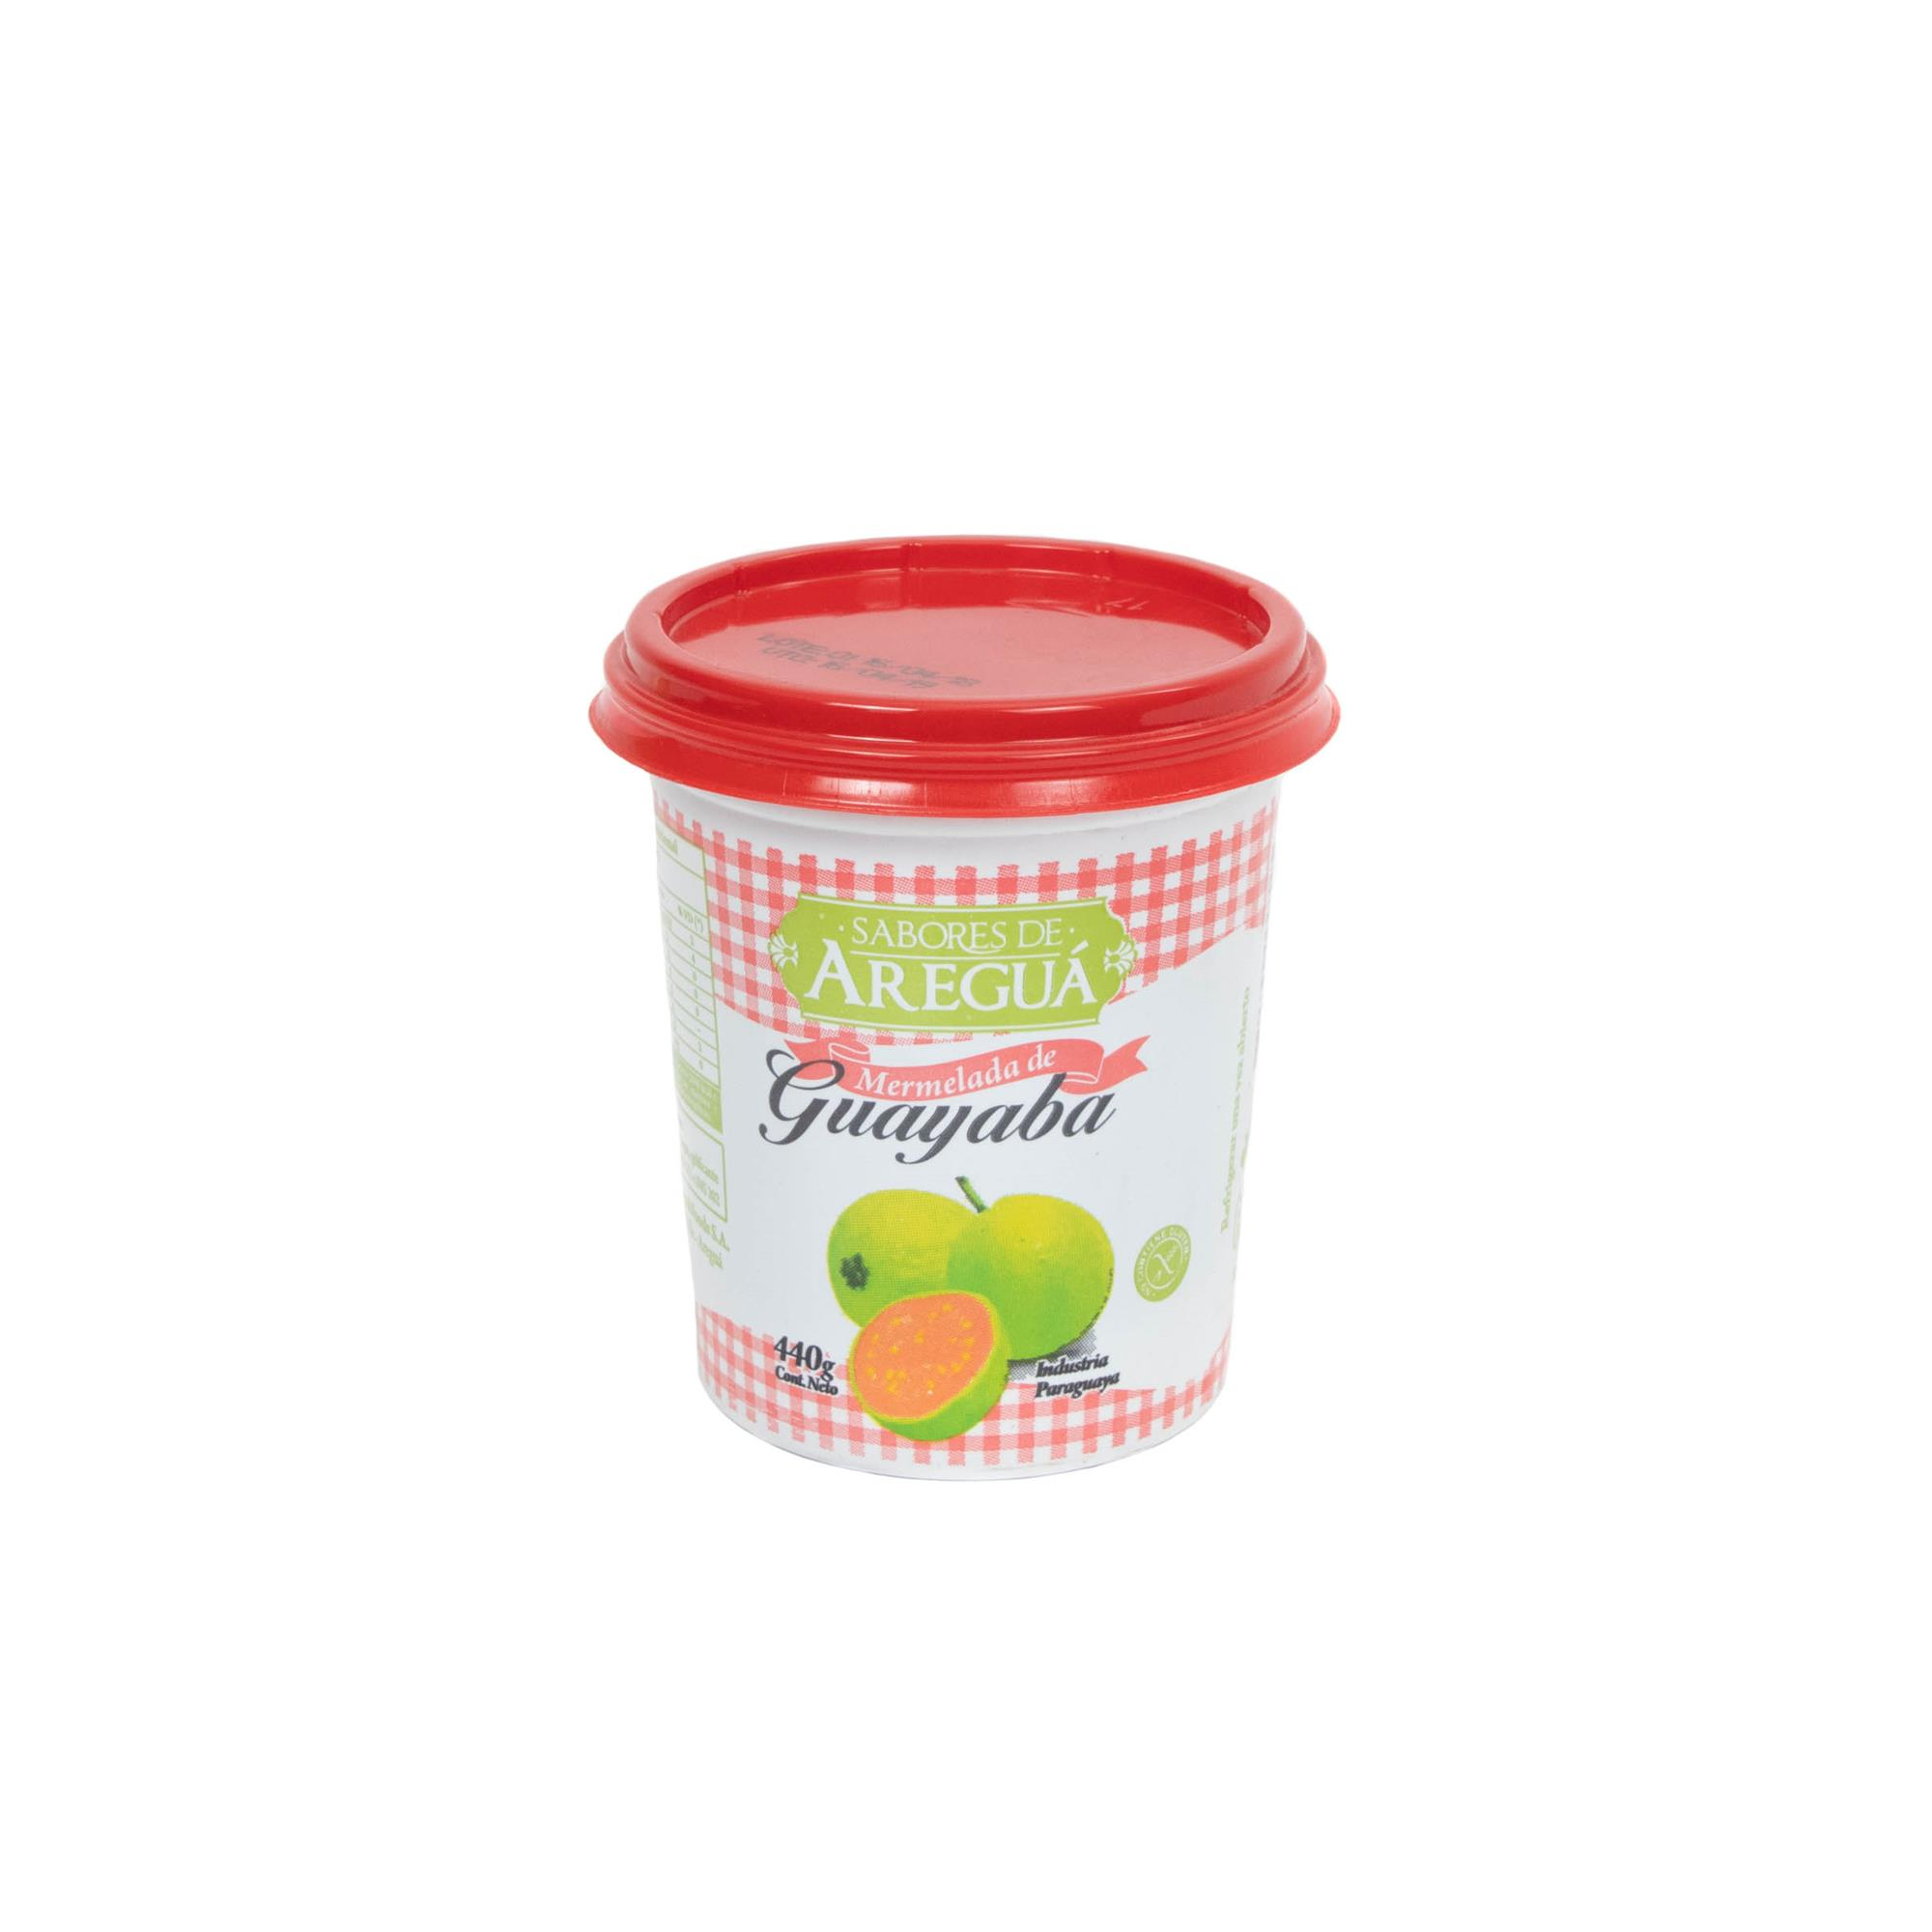 MERMELADA GUAYABA NORMAL 440GR F Y F POT